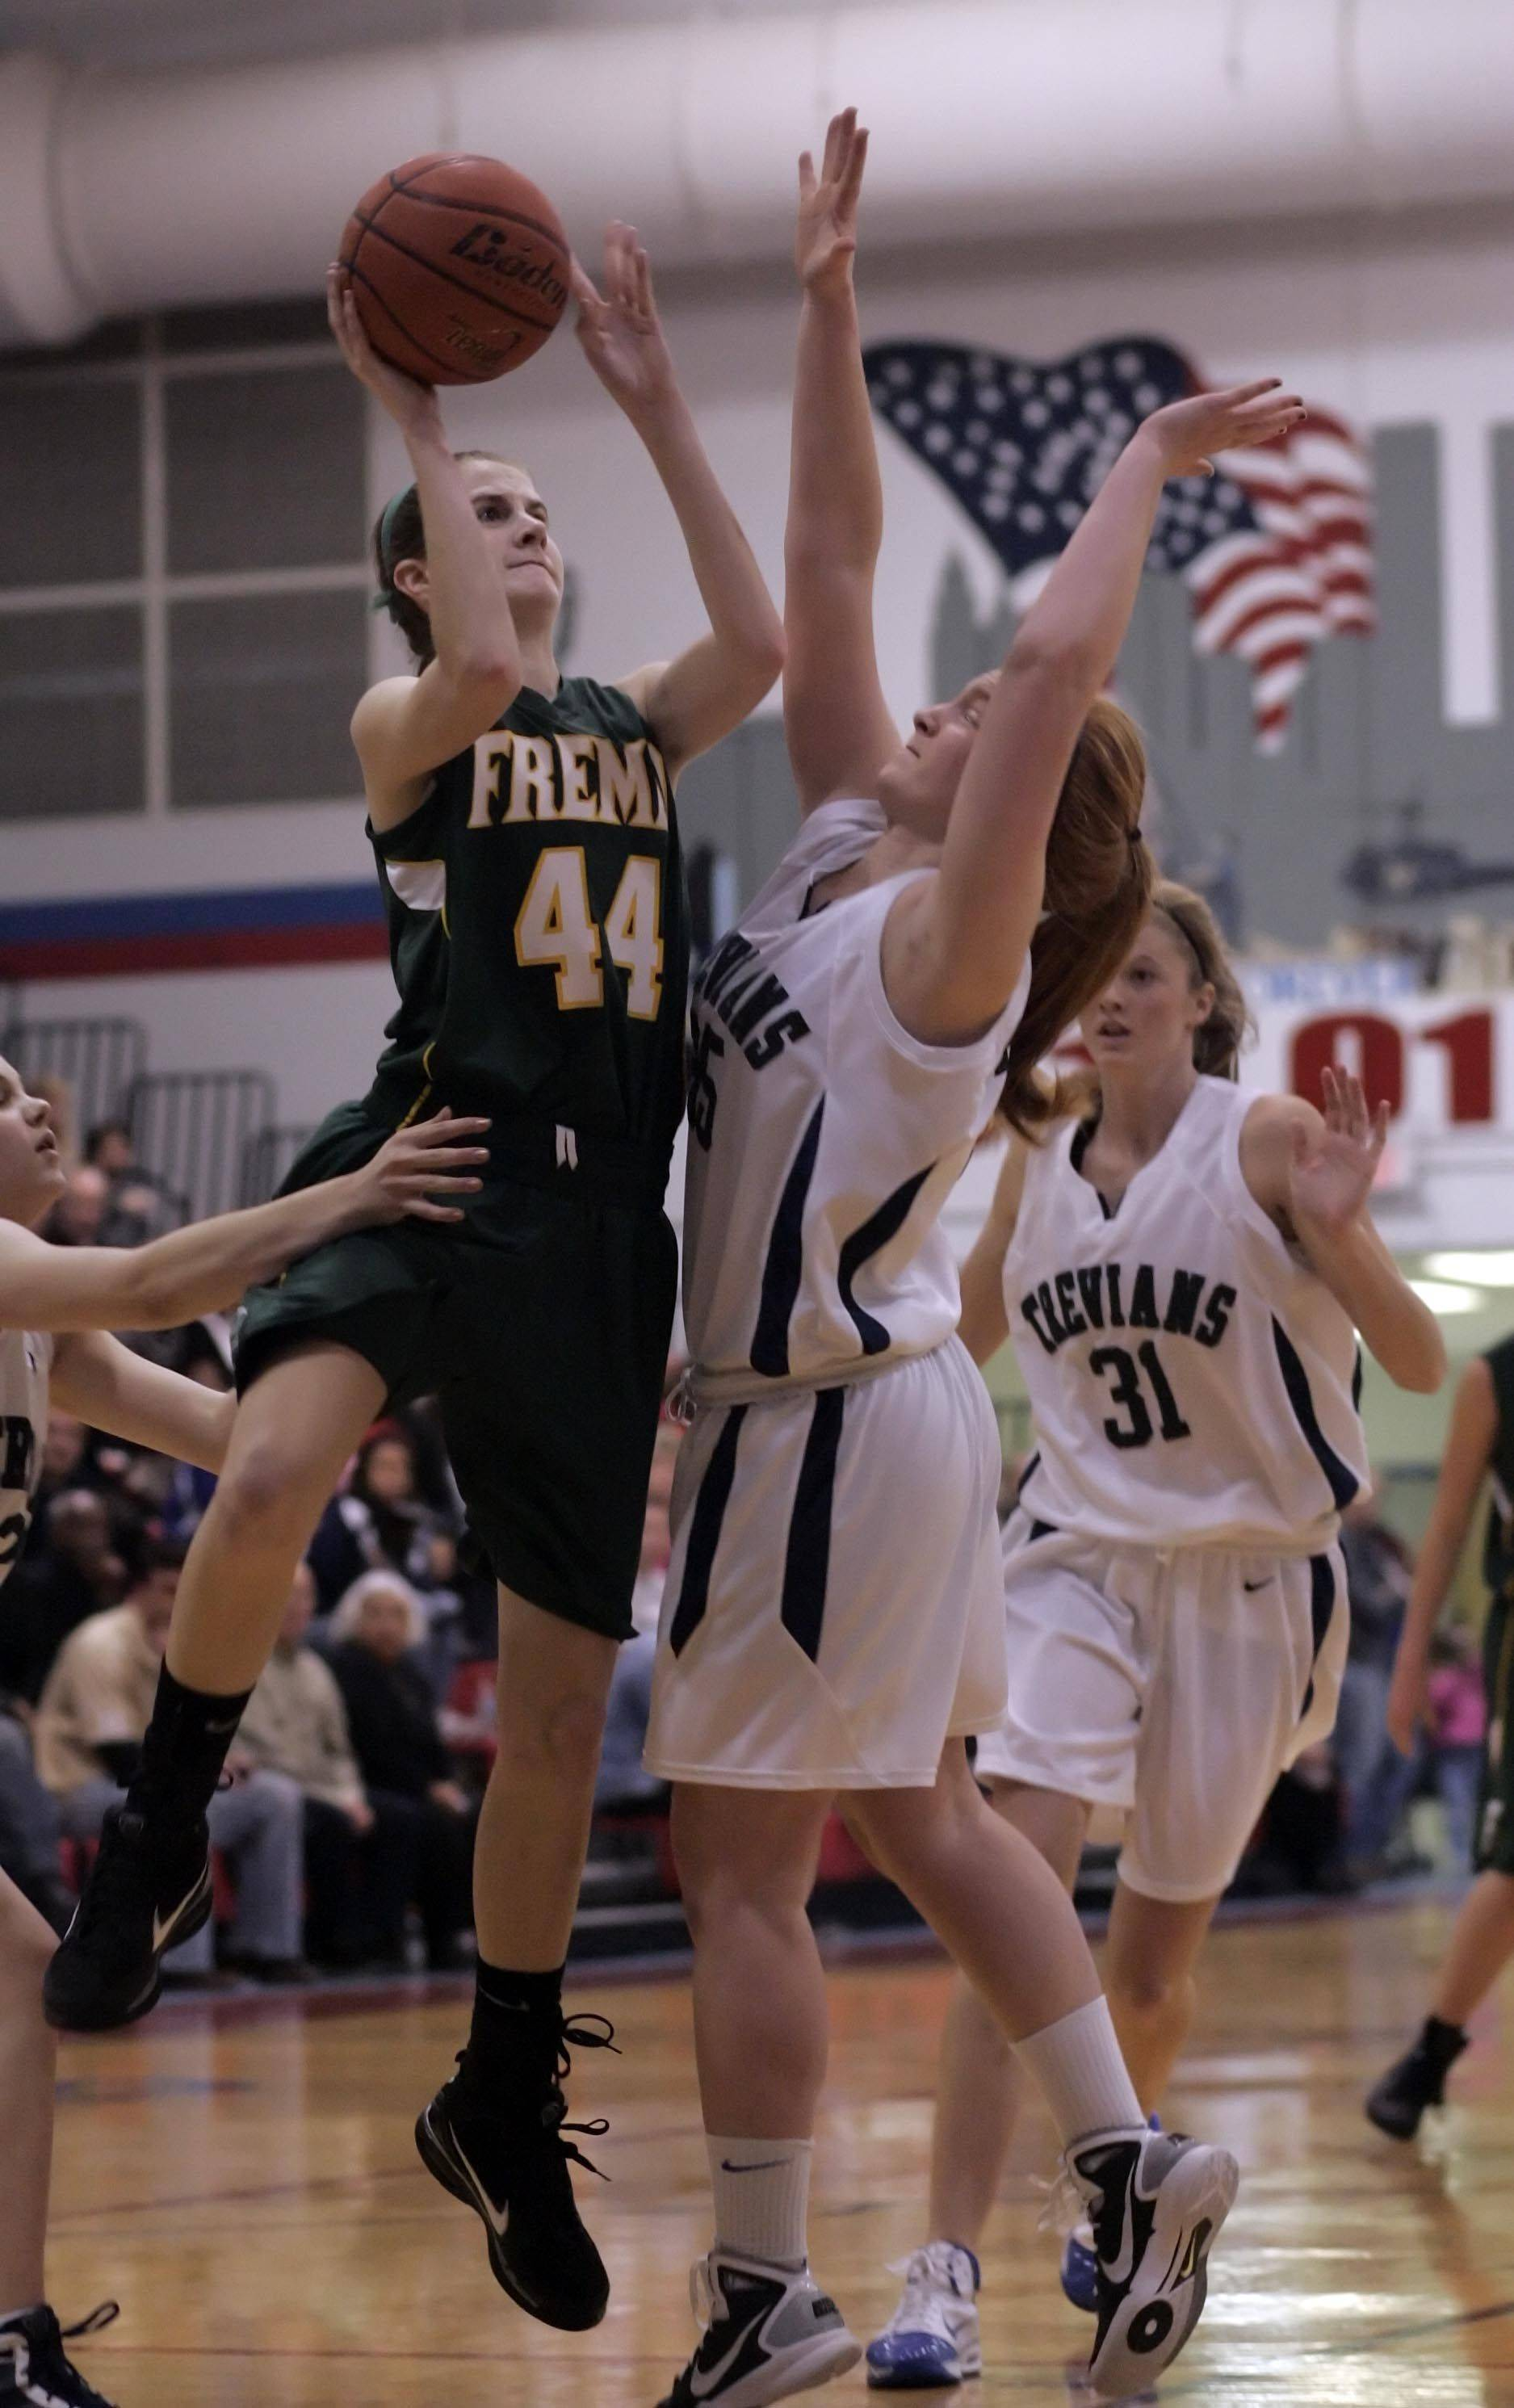 Fremd's Jessi Wiedemann 44, goes to the hoop over New Trier's Jessica Blackwell, 35, during Fremd vs New Trier in the Third place game of the Charger Classic girls basketball tournament at Dundee-Crown High School in Carpentersville Thursday, December 30, 2010.